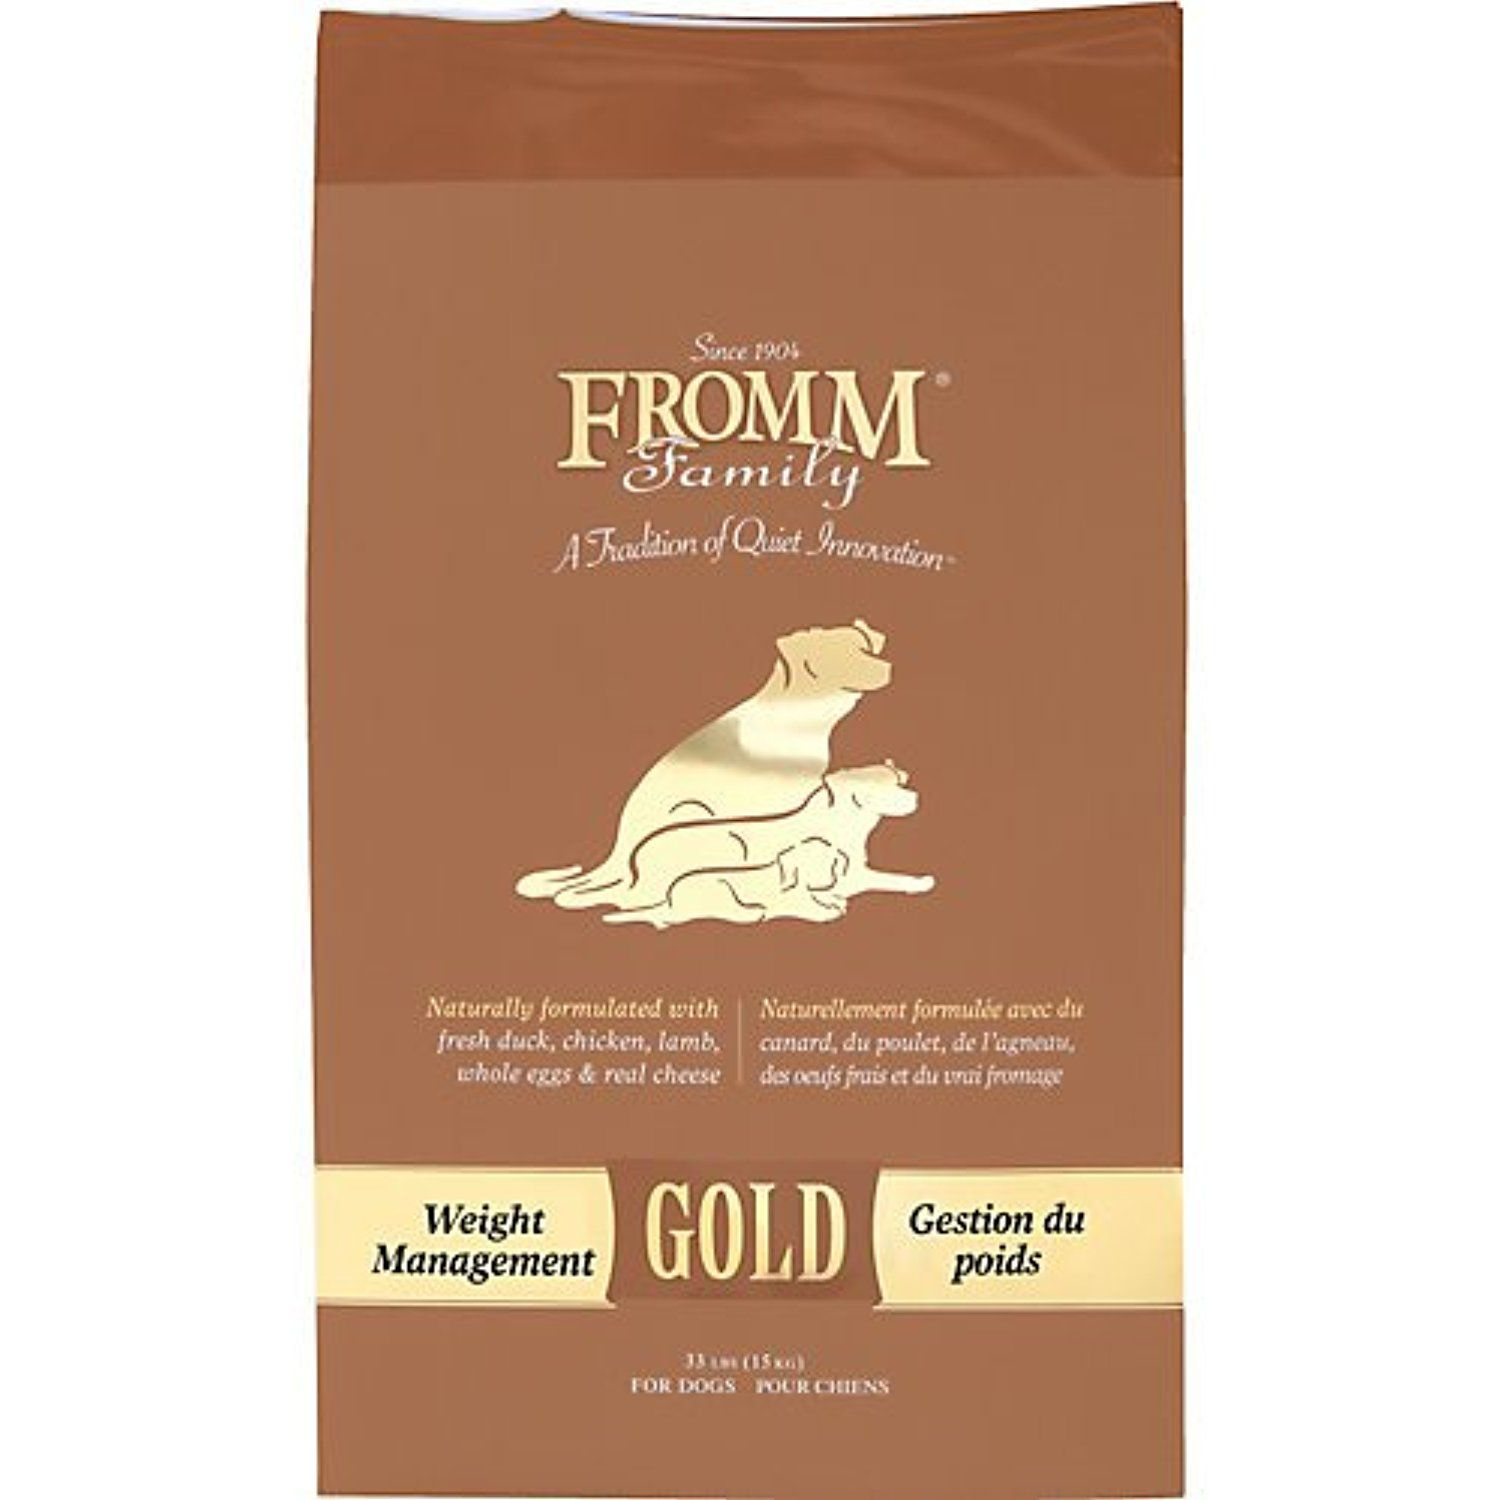 Fromm Gold Weight Management Dry Dog Food 33lb You Can Click